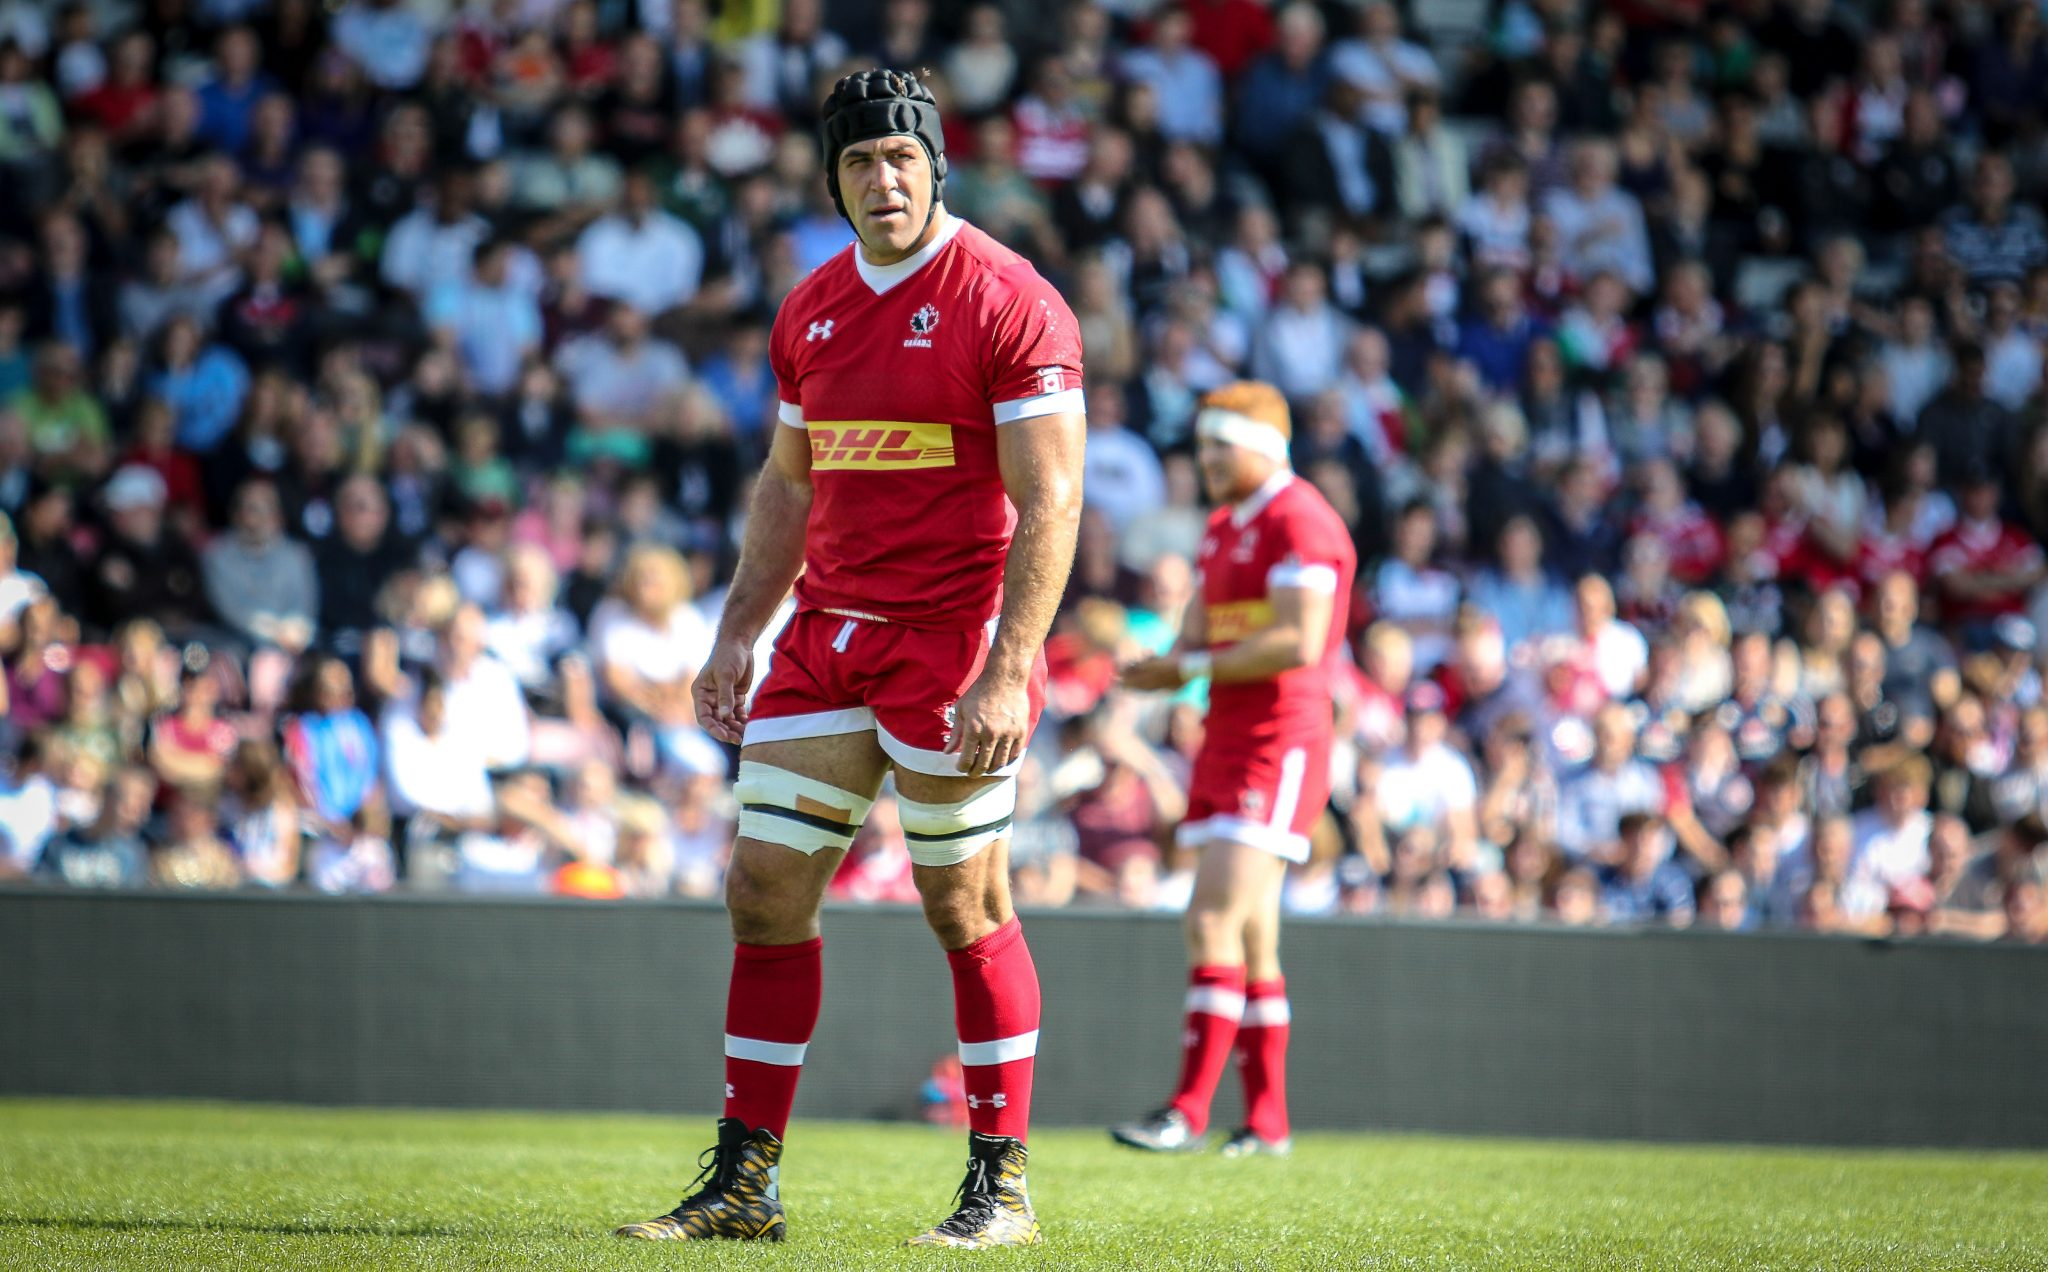 Rugby Podcast: Cudmore, Olmstead optimistic going into 2016 Summer Series